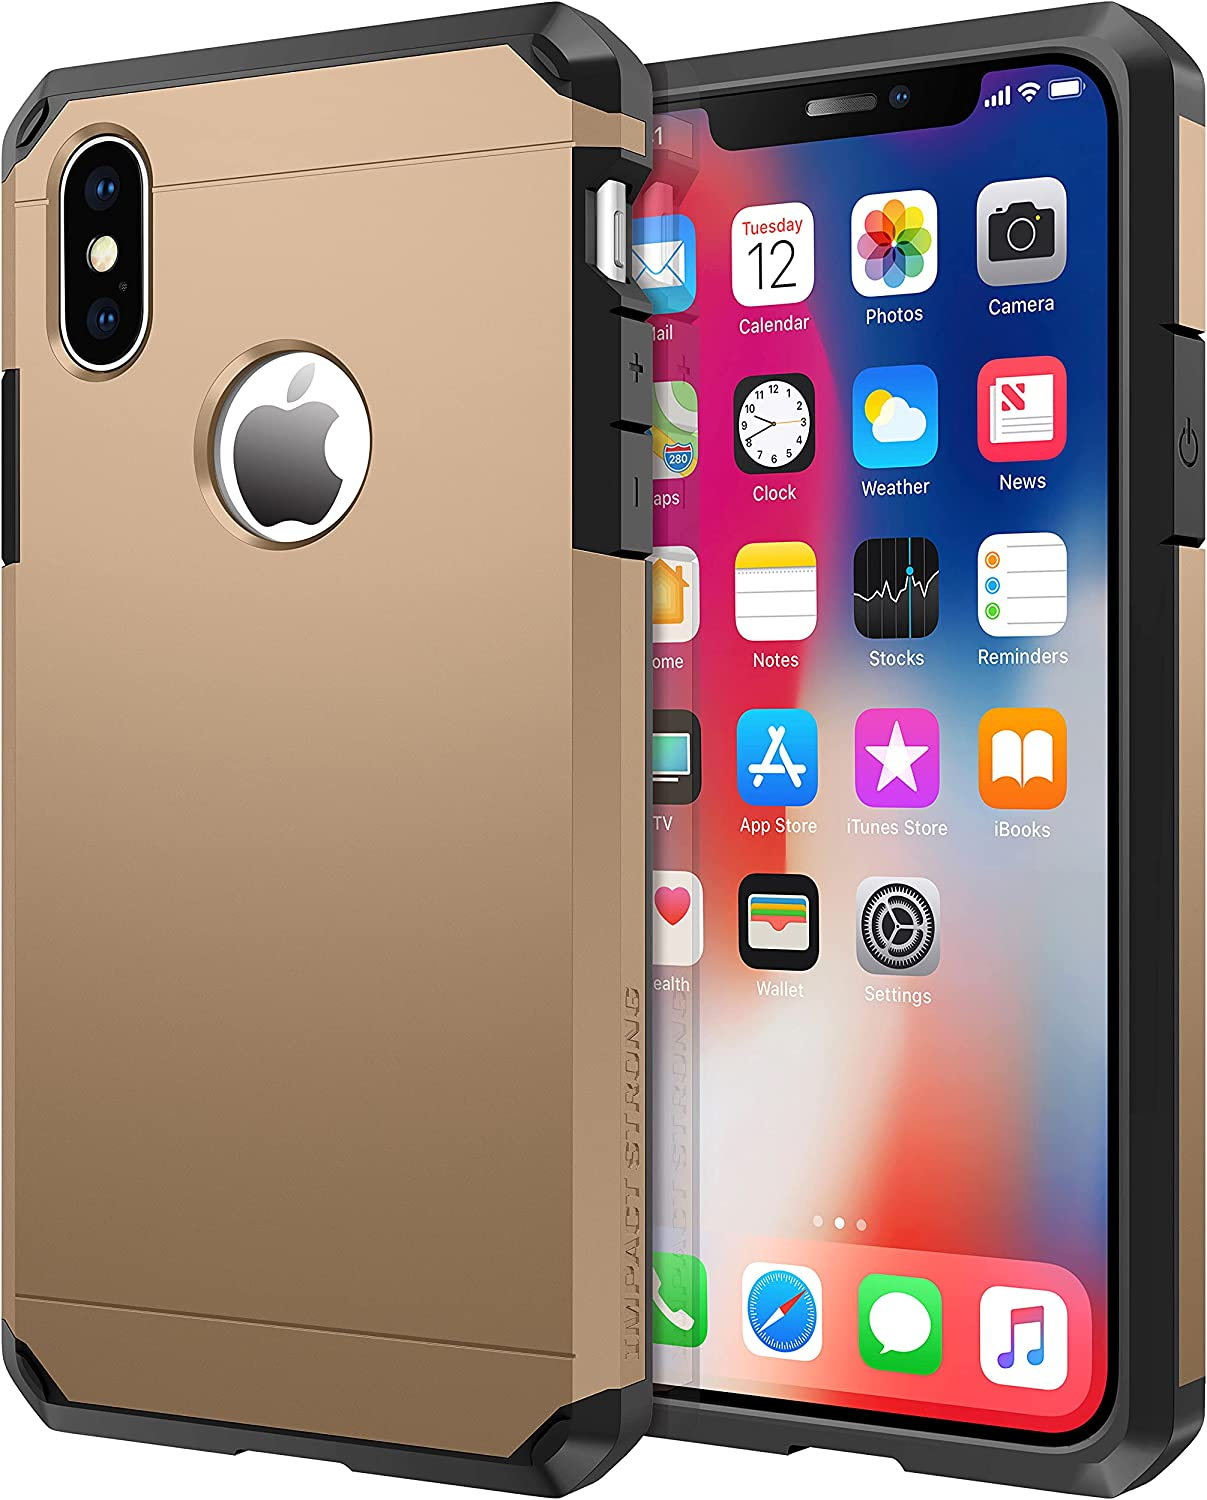 ImpactStrong Compatible with iPhone X Case/iPhone Xs Case, Heavy Duty Dual Layer Protection Cover Heavy Duty Case Designed for iPhone X/Xs 5.8 inch (2018) - Gold